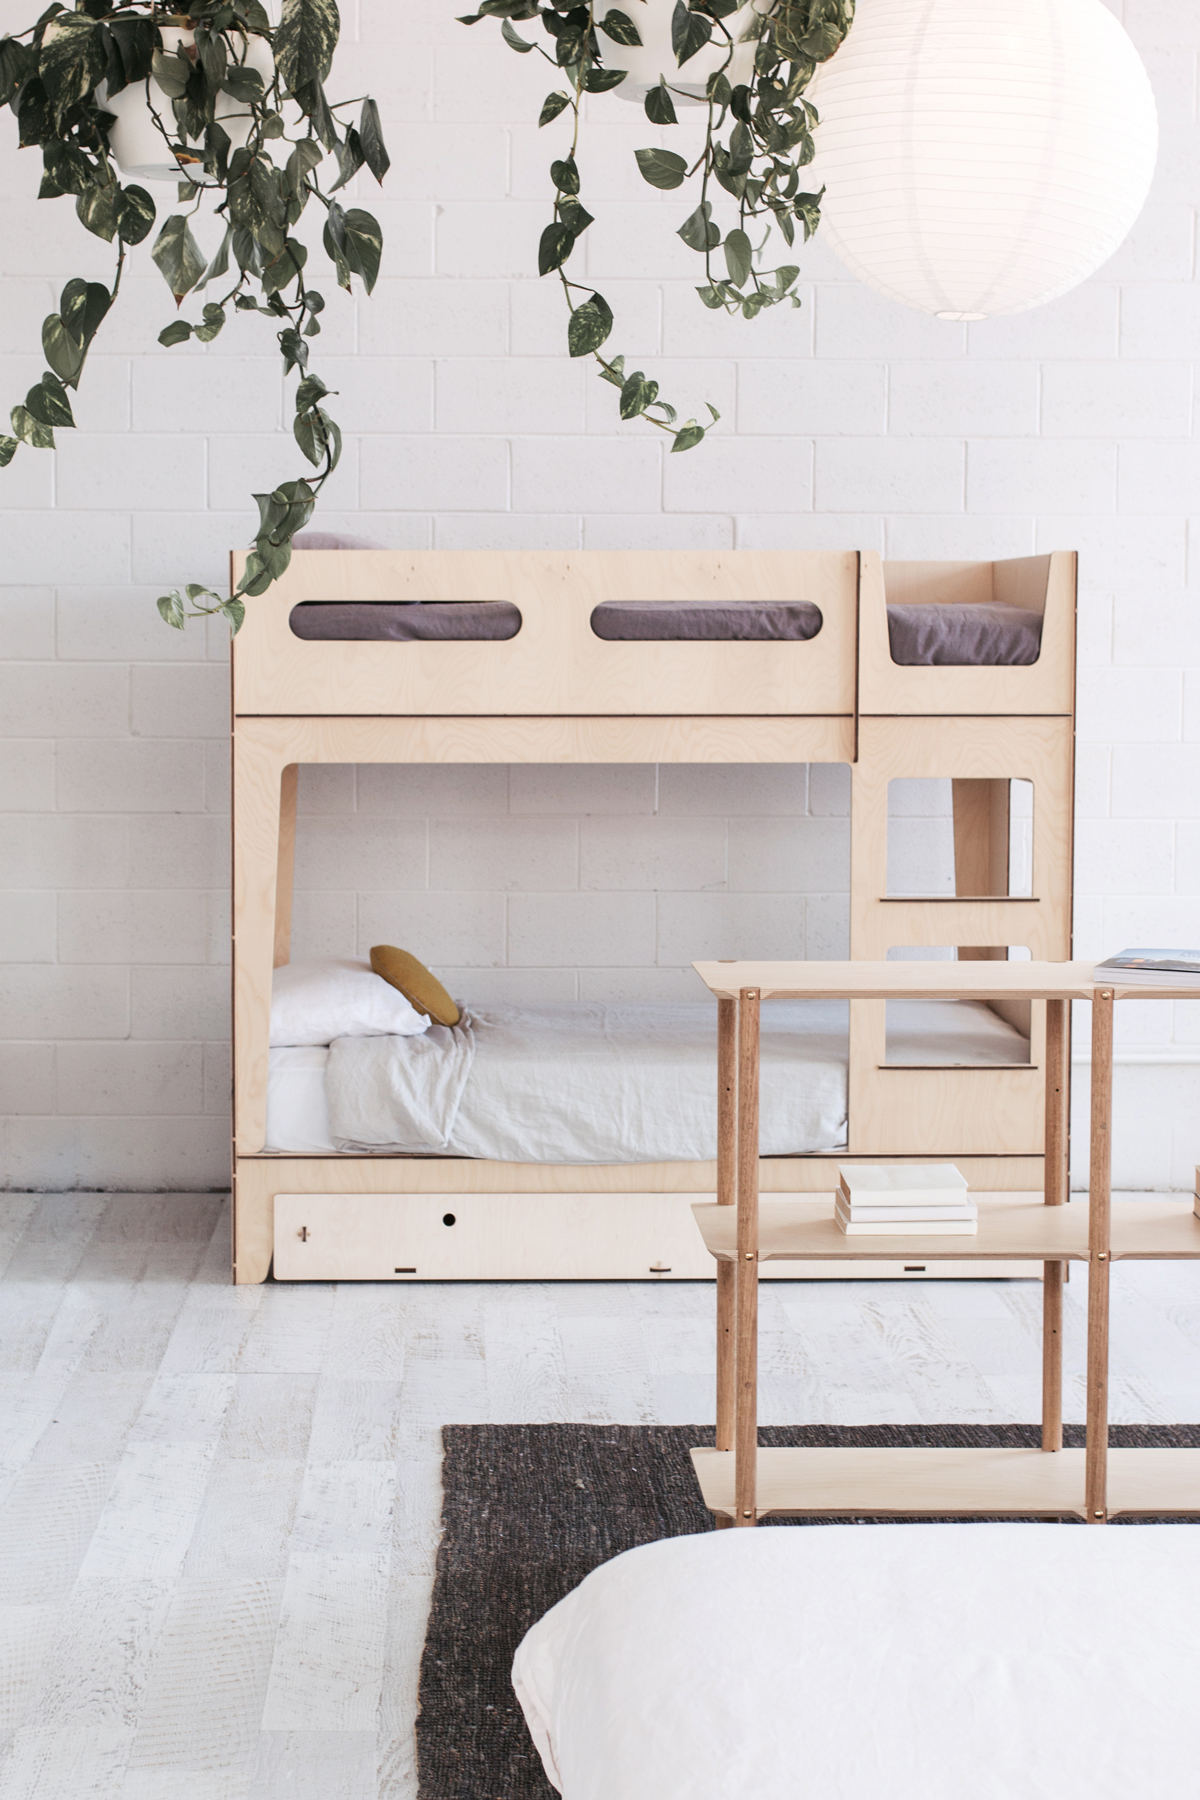 Sutainable eco friendly toxin free furniture bunk beds eco and us